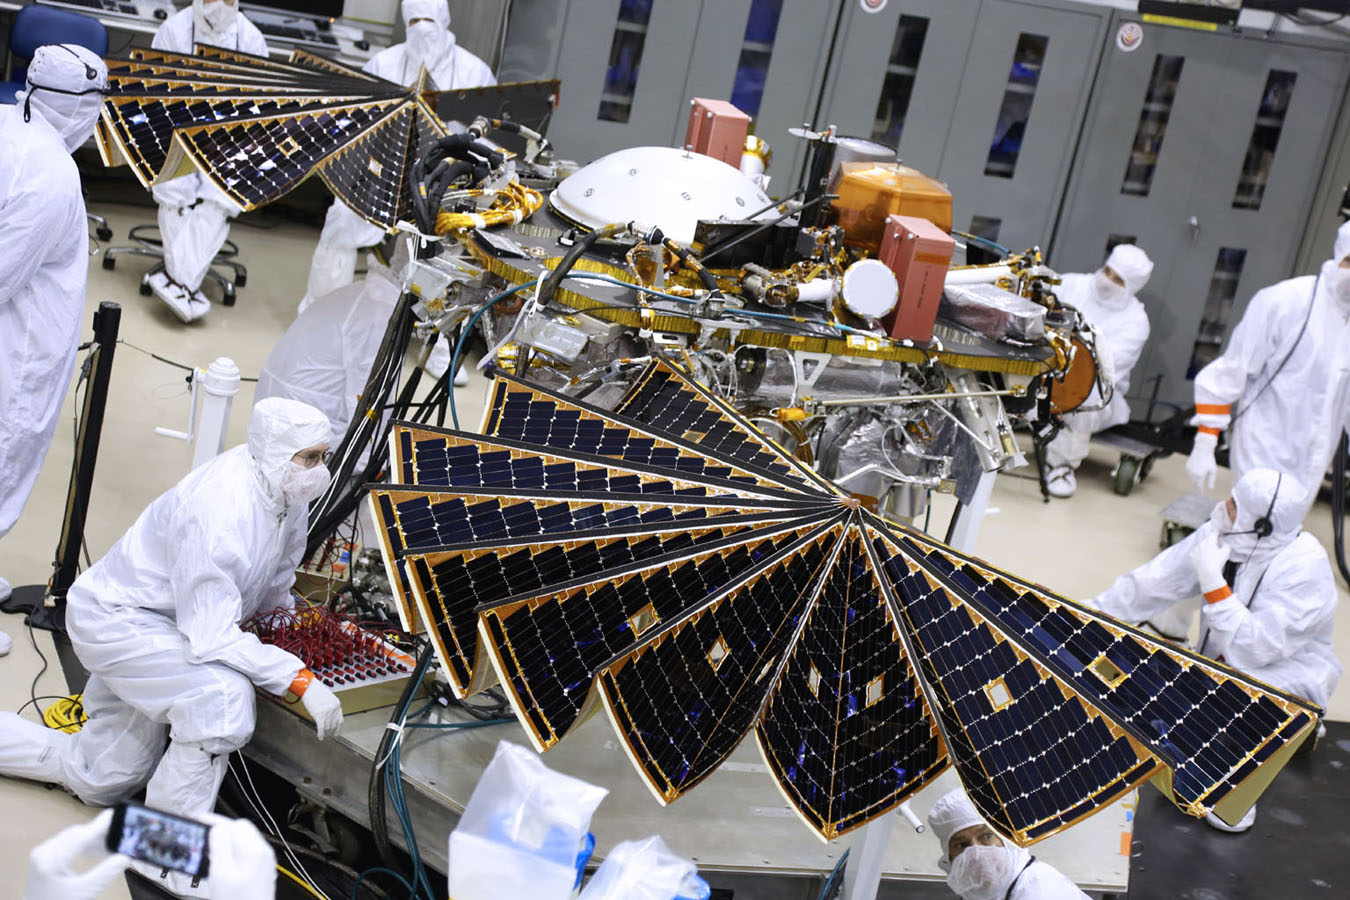 Large Solar Arrays Deployed During Tests Of New Mars